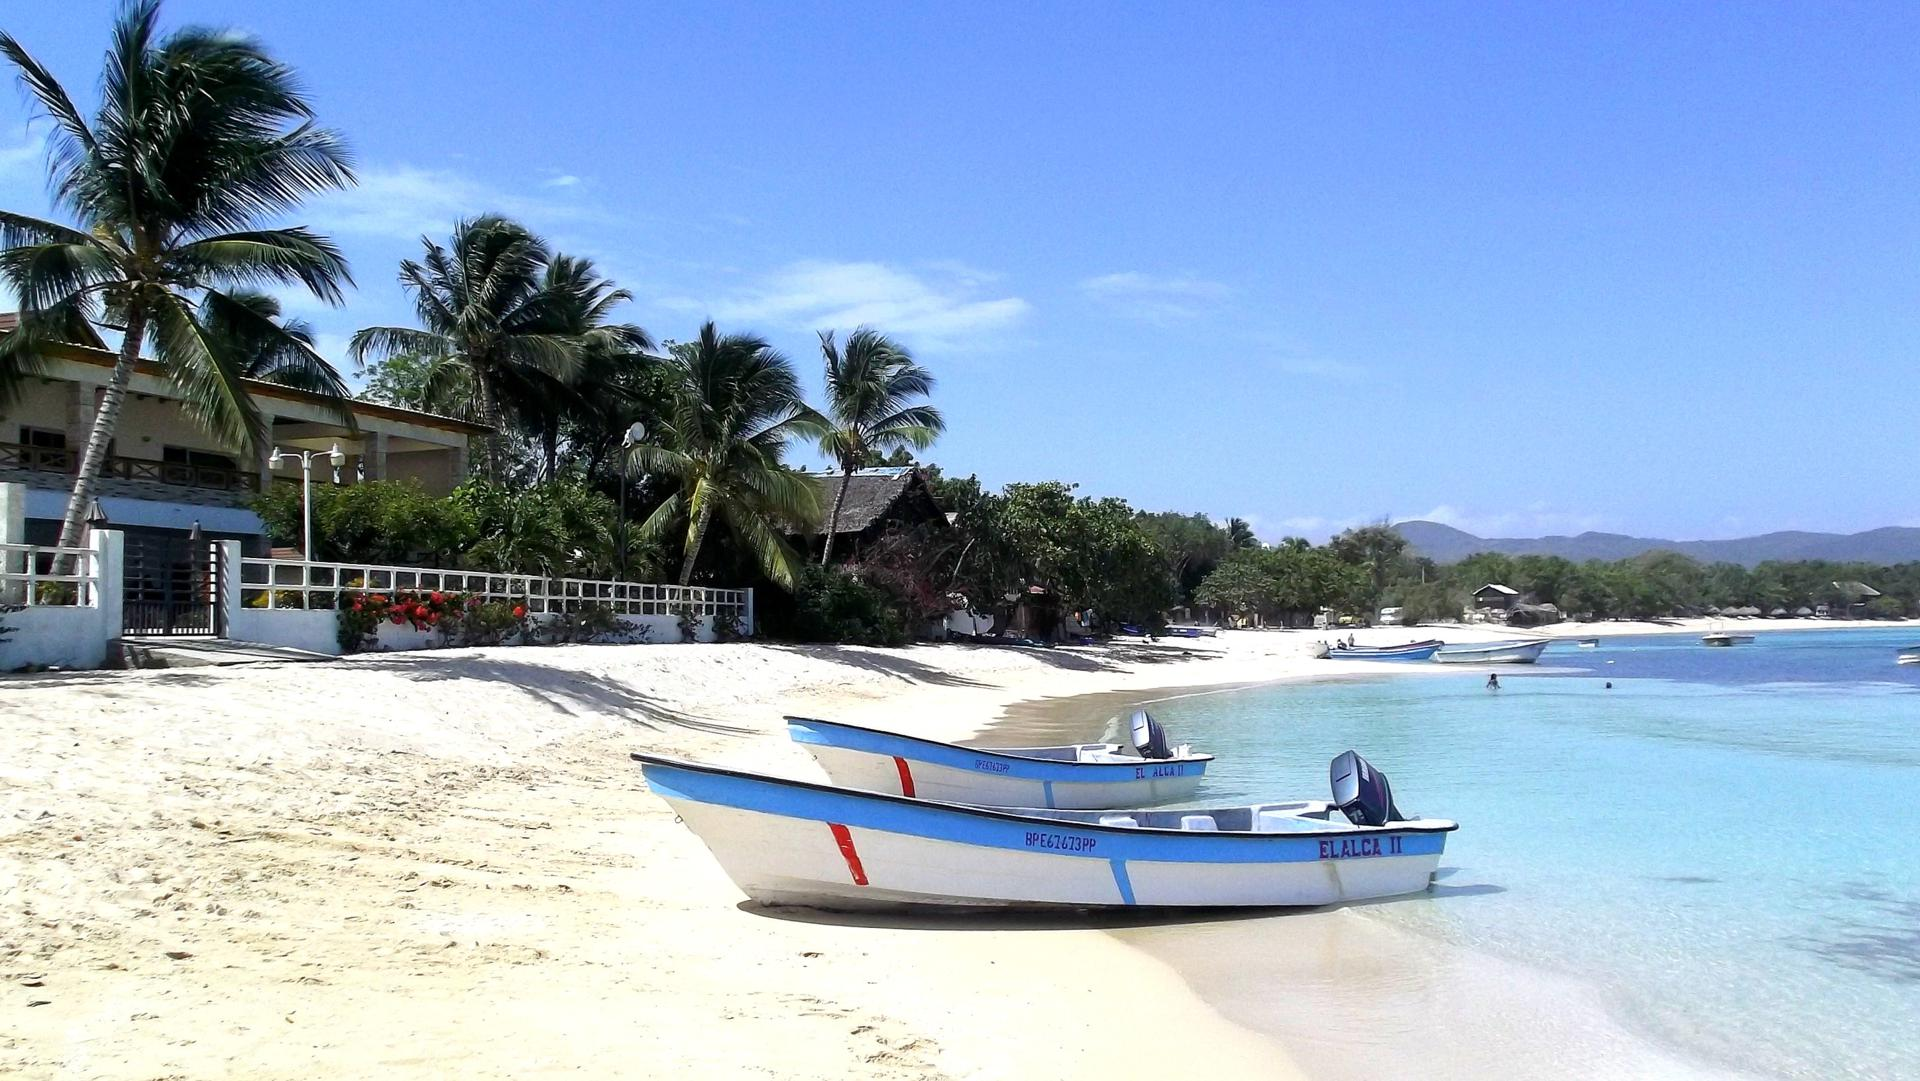 The beautiful and calm fishing village of Punta Rucia at the North Coast